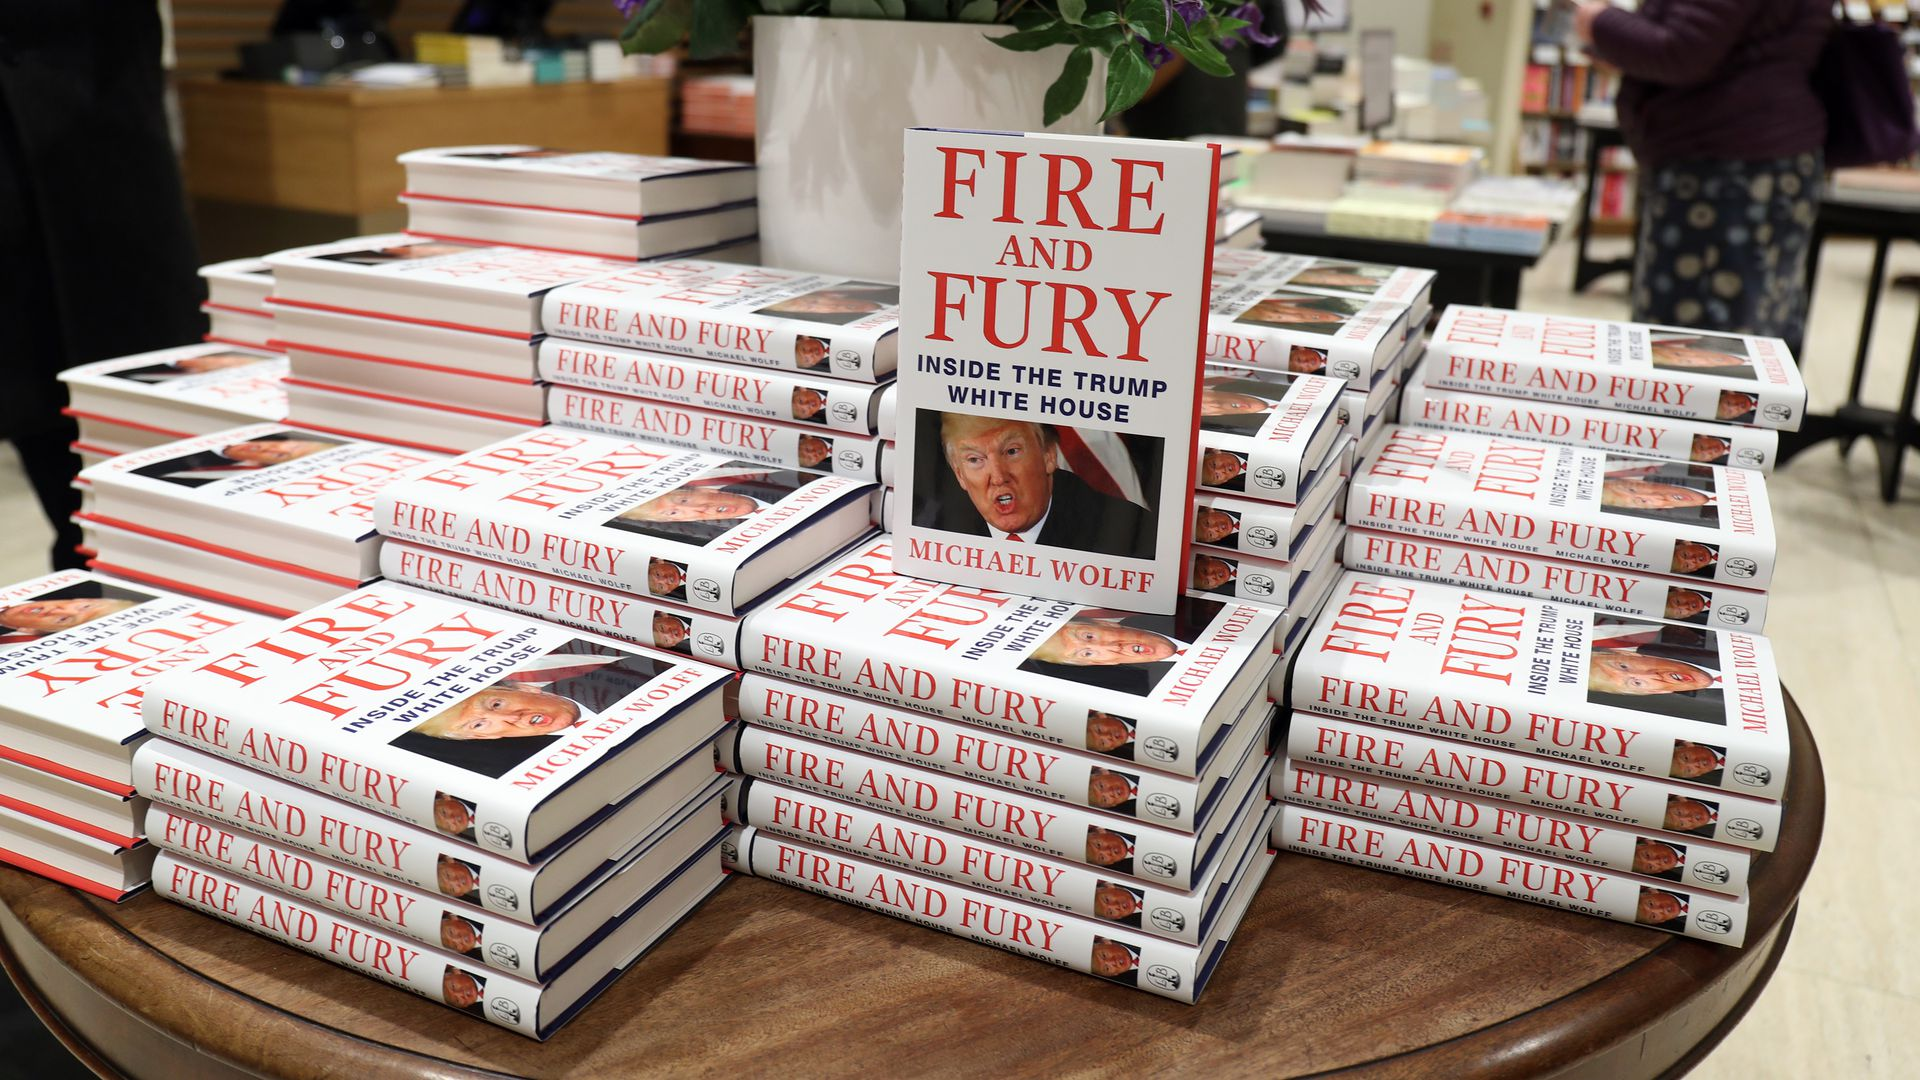 An in-store display at Waterstone's Piccadilly shows copies of one of the UK's first consignments of 'Fire and Fury'